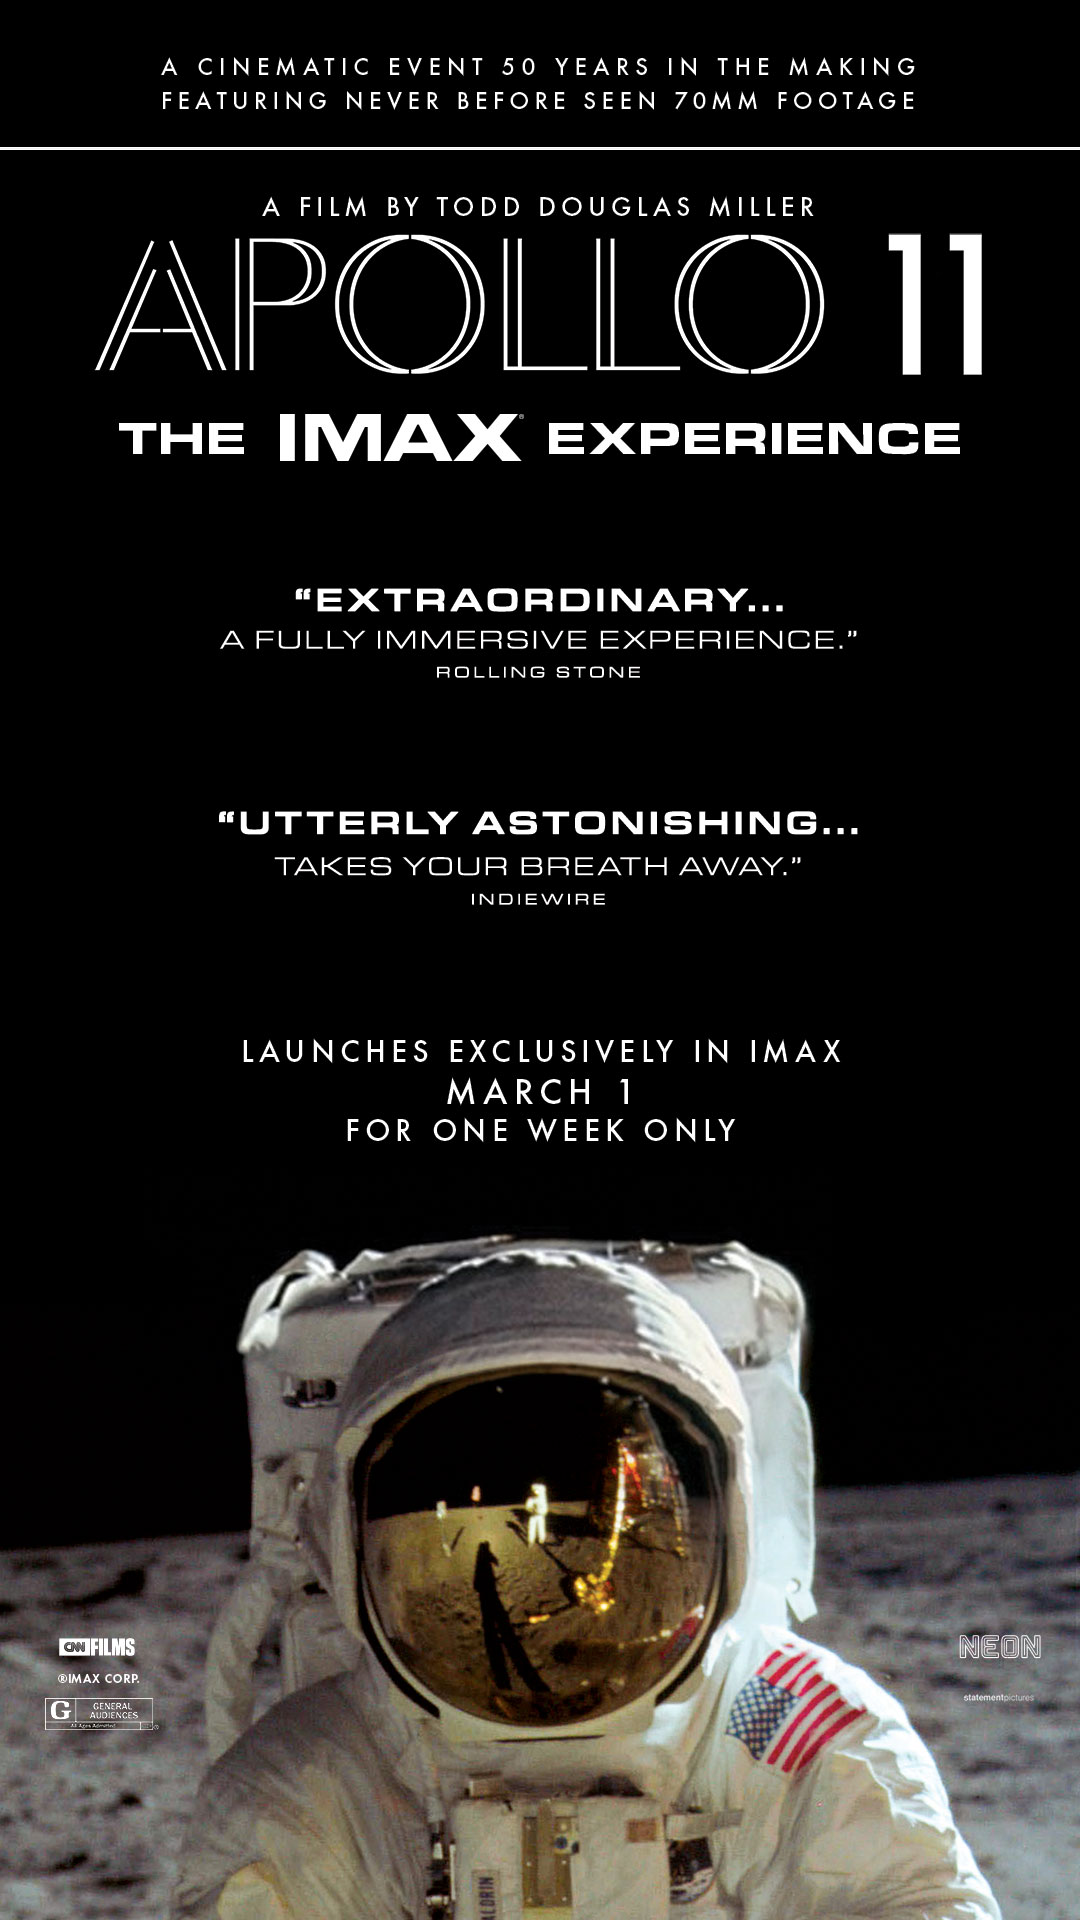 Apollo 11 (2019) | Nearby Showtimes, Tickets | IMAX